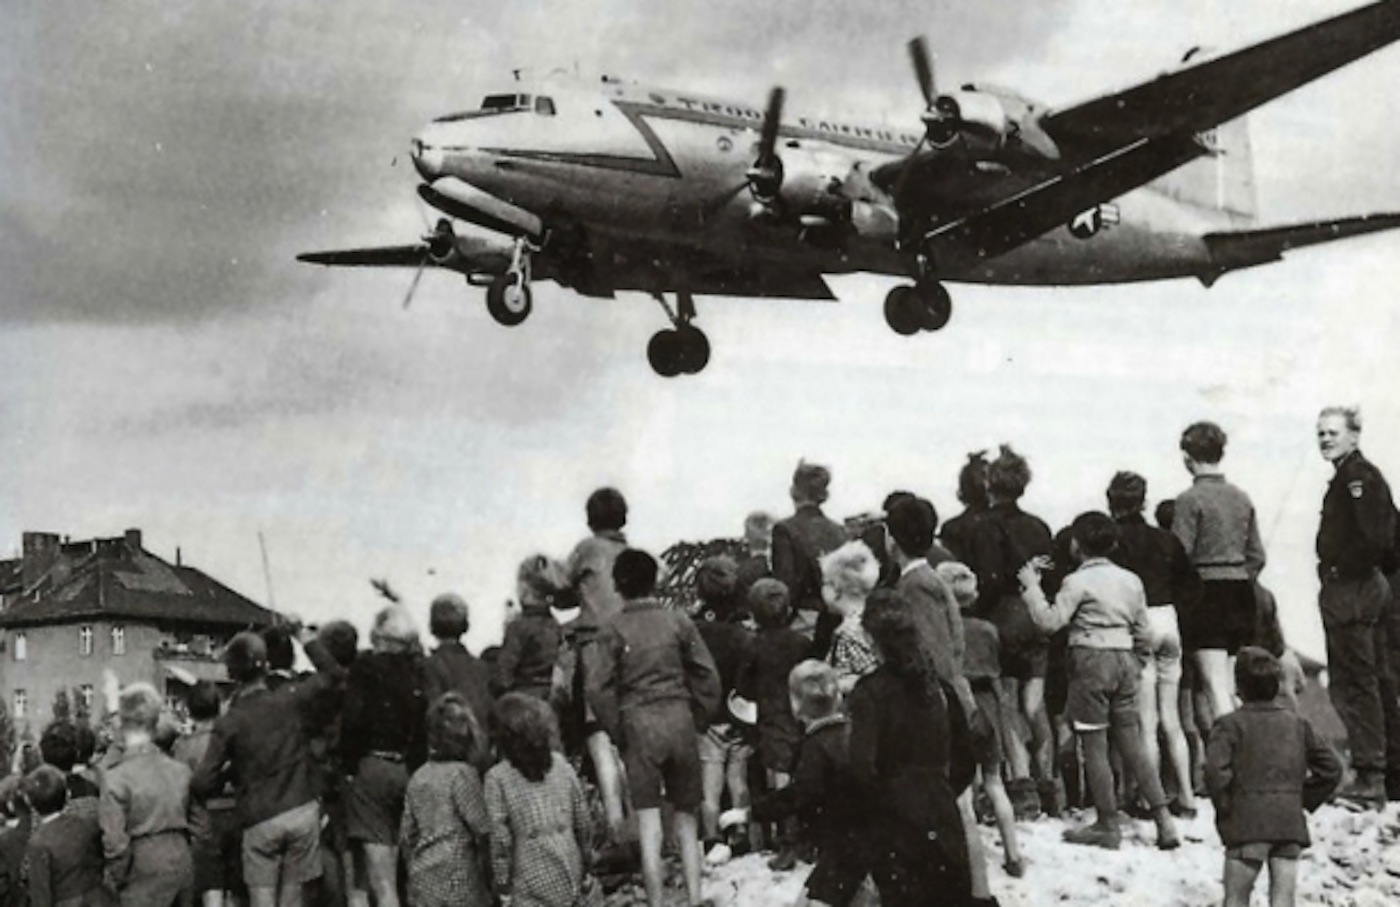 berlin blockade research paper An analysis of the berlin blockade contents 1 introduction 2 the berlin blockade 5 aftermath and consequences 6.